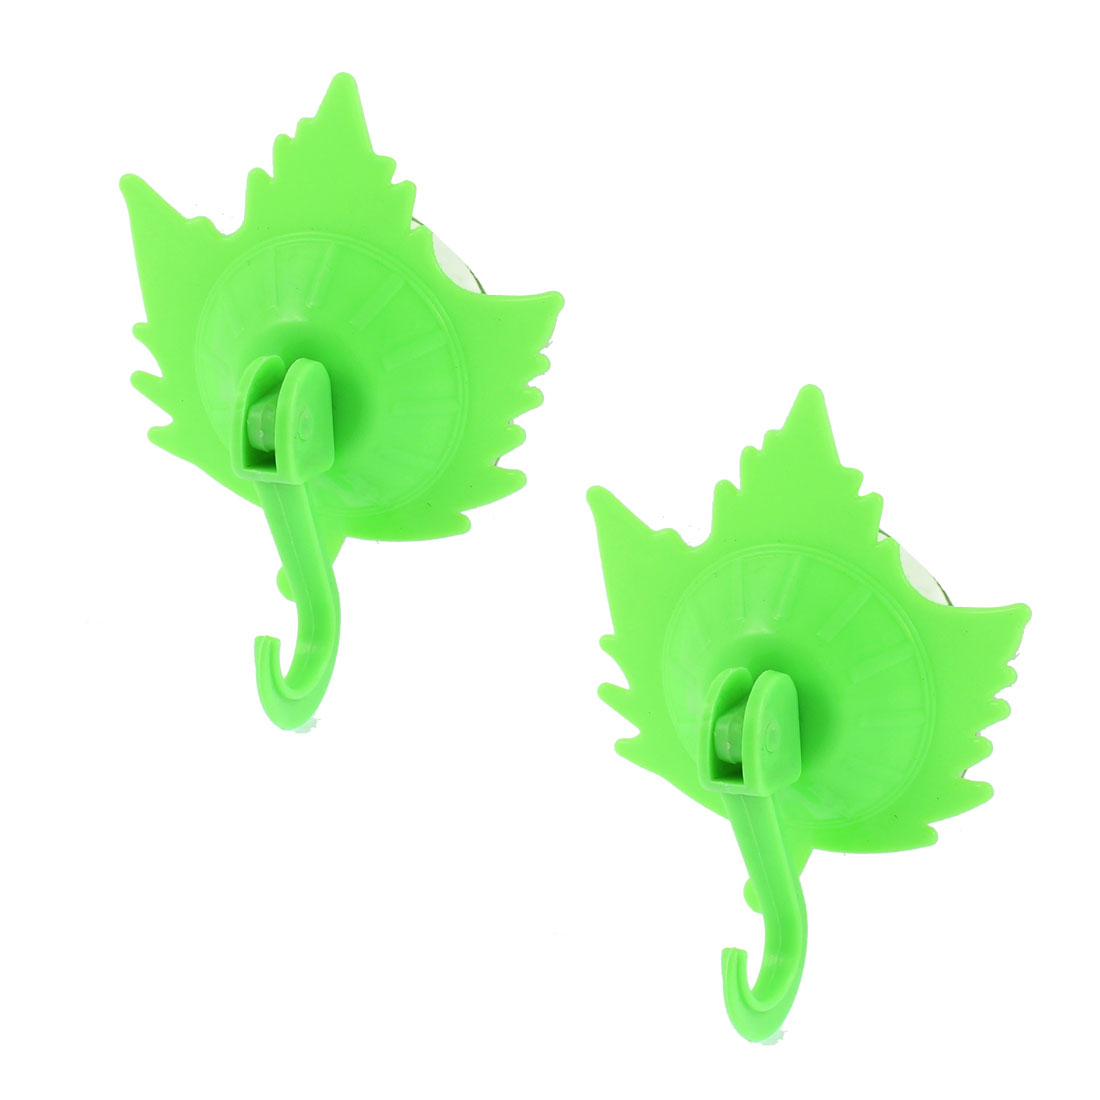 Bathroom Towel Maple Leaf Shaped Vacuum Suction Cup Hook Wall Hanger Green 2pcs